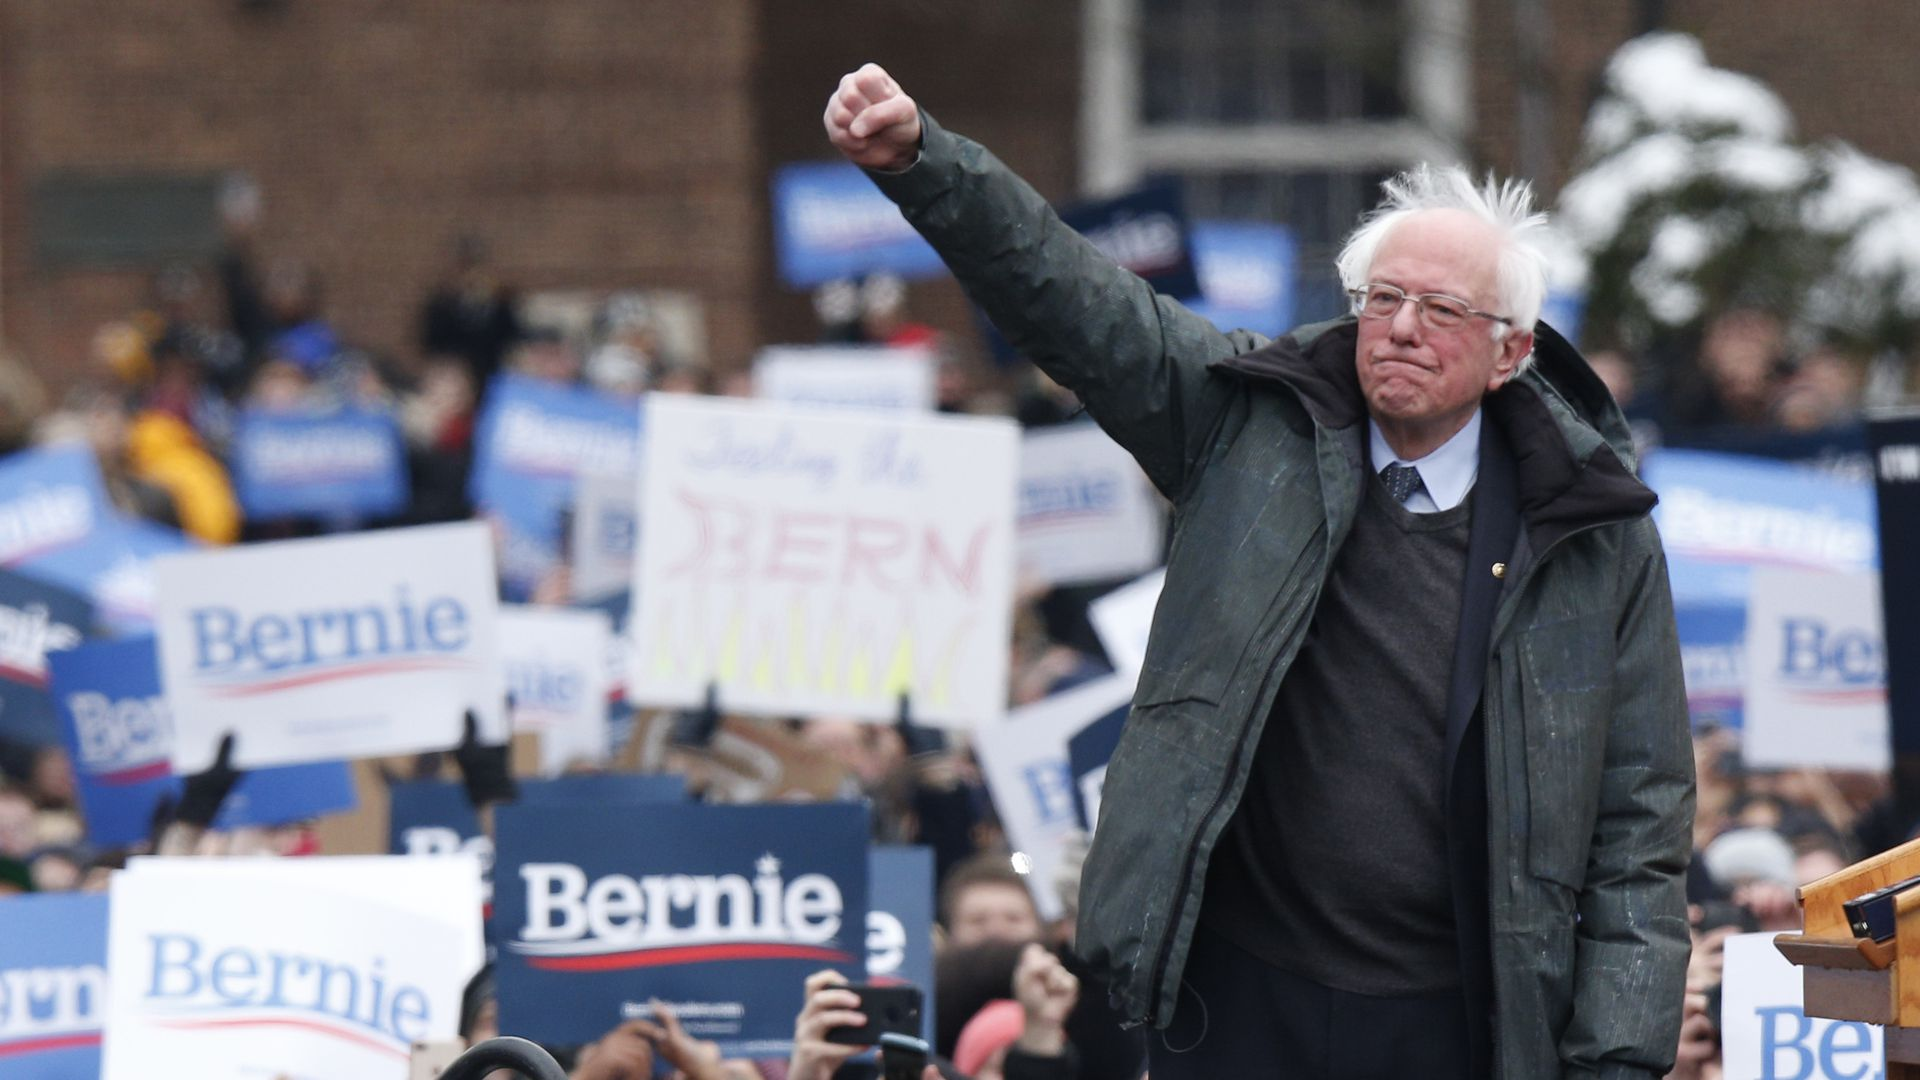 Bernie Sanders draws a huge crowd in Brooklyn, New York, for his first rally for 202.